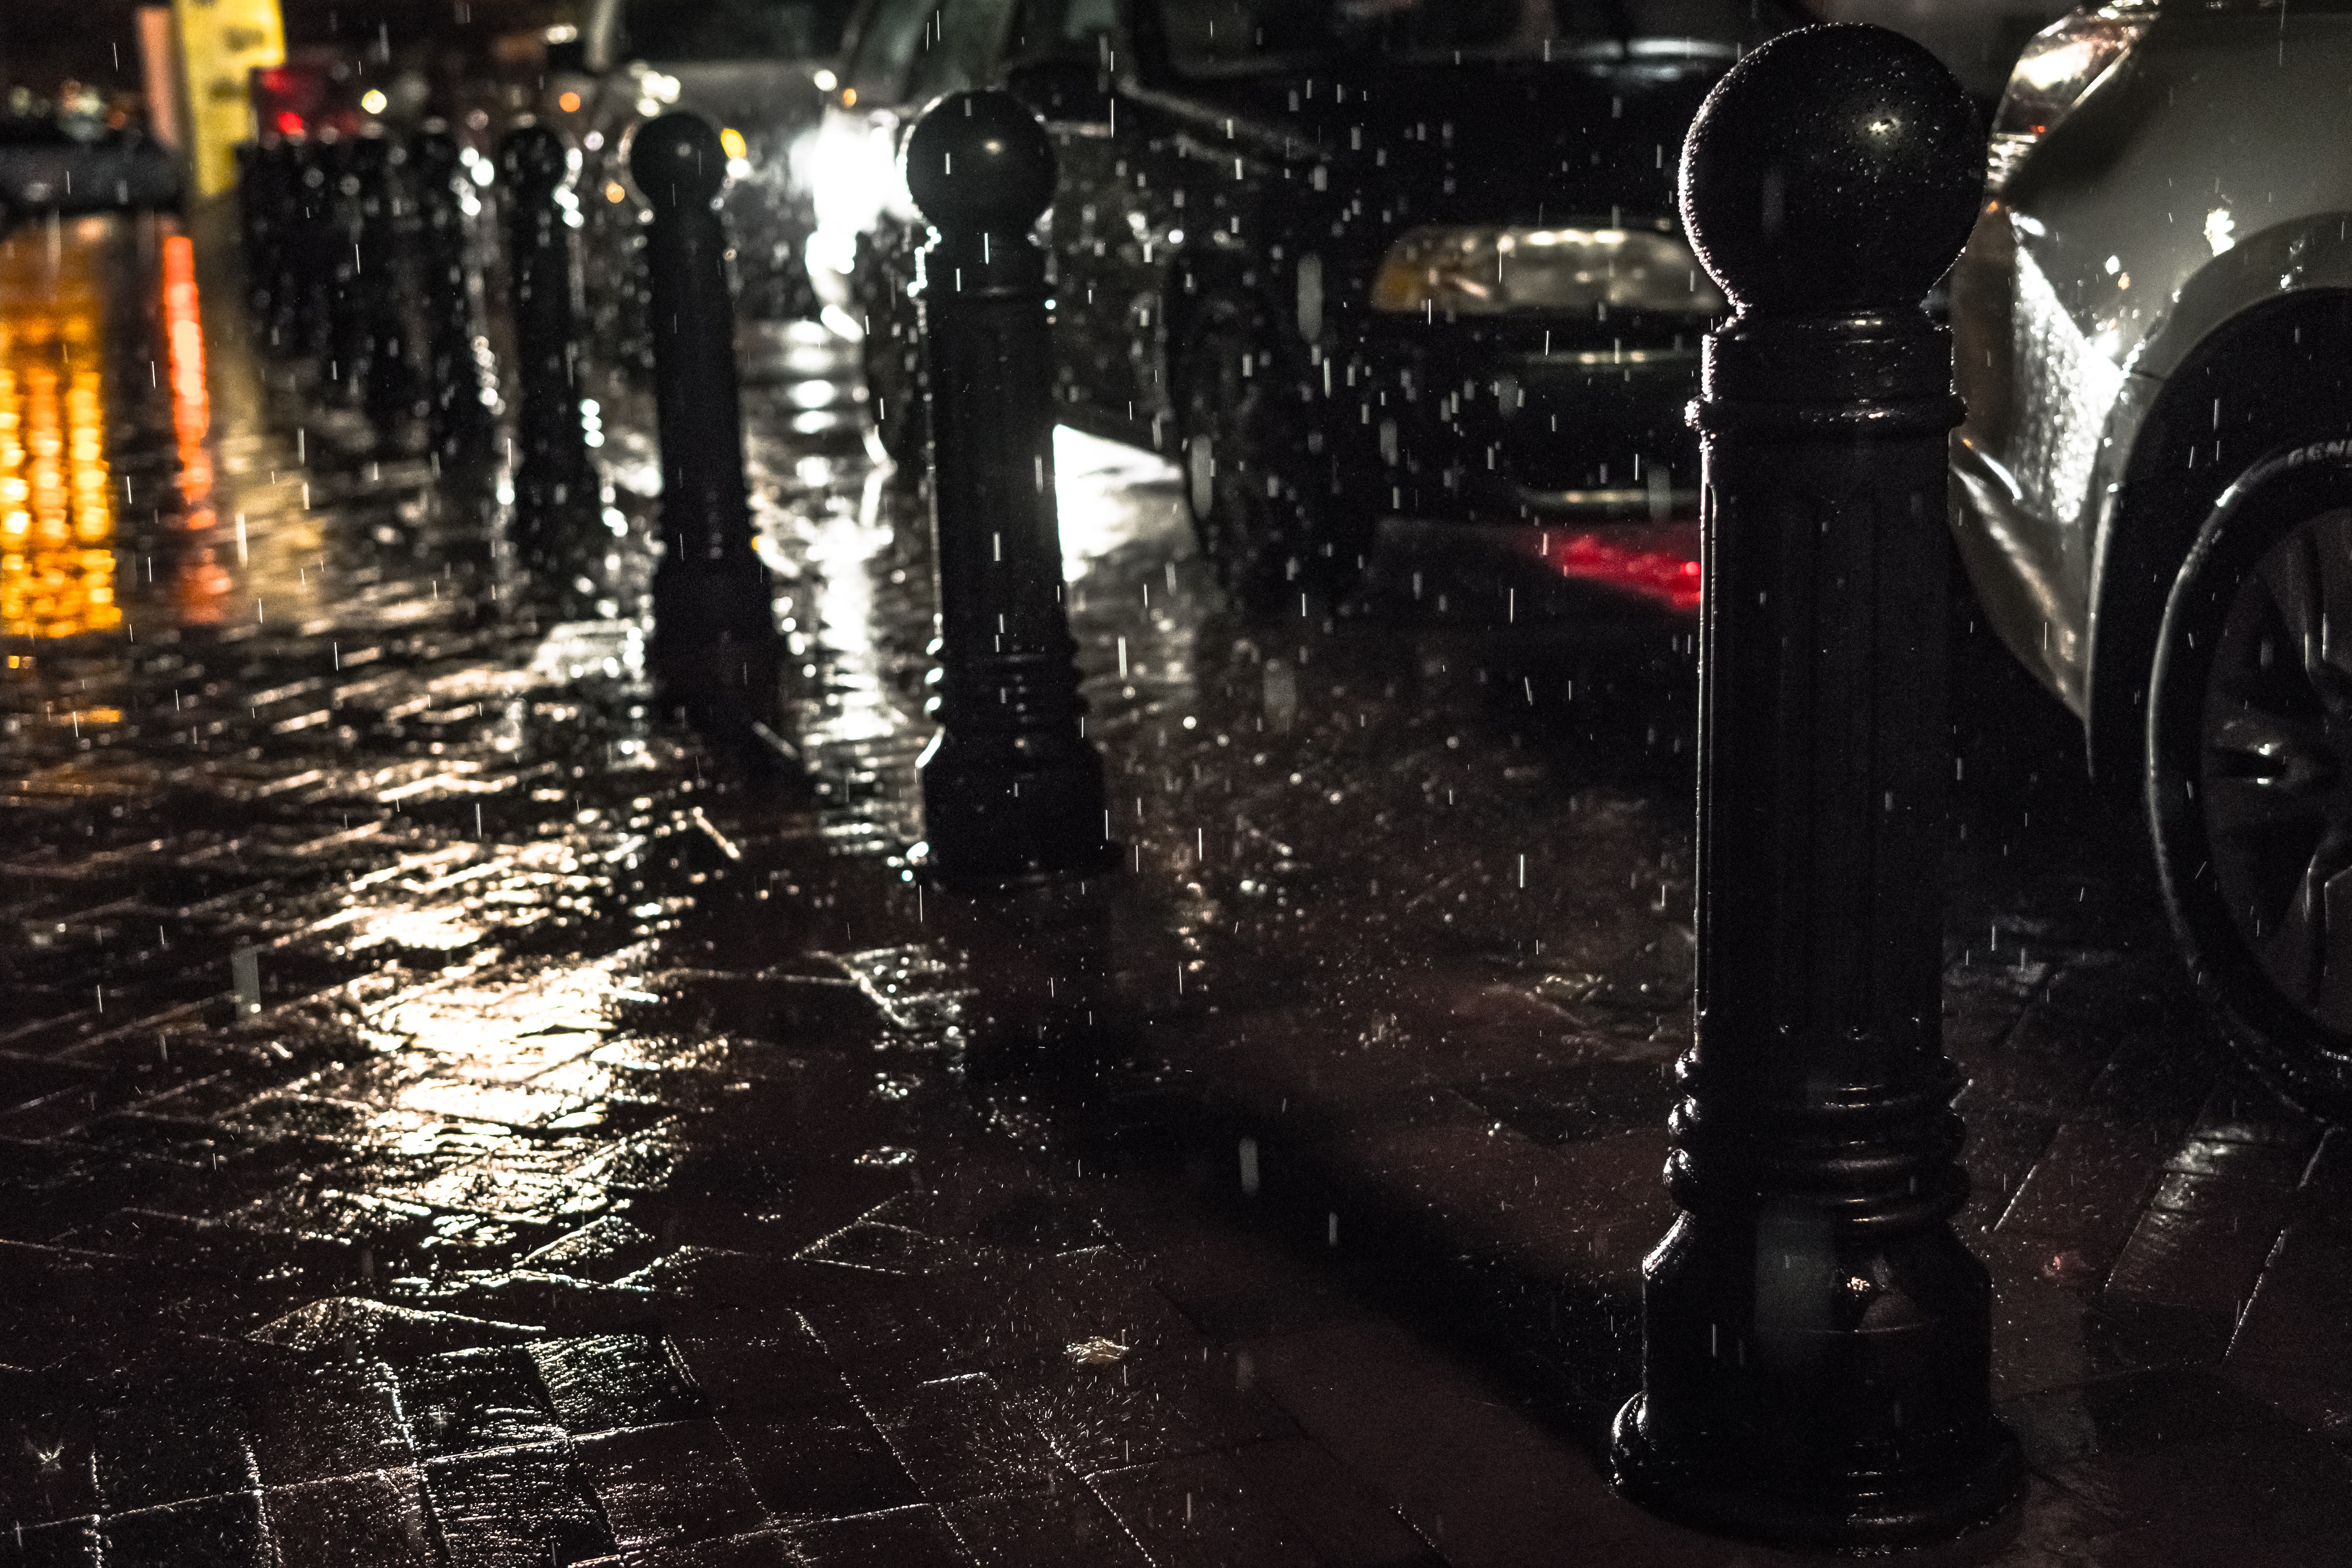 free photo black posts on black pavement beneath falling rain